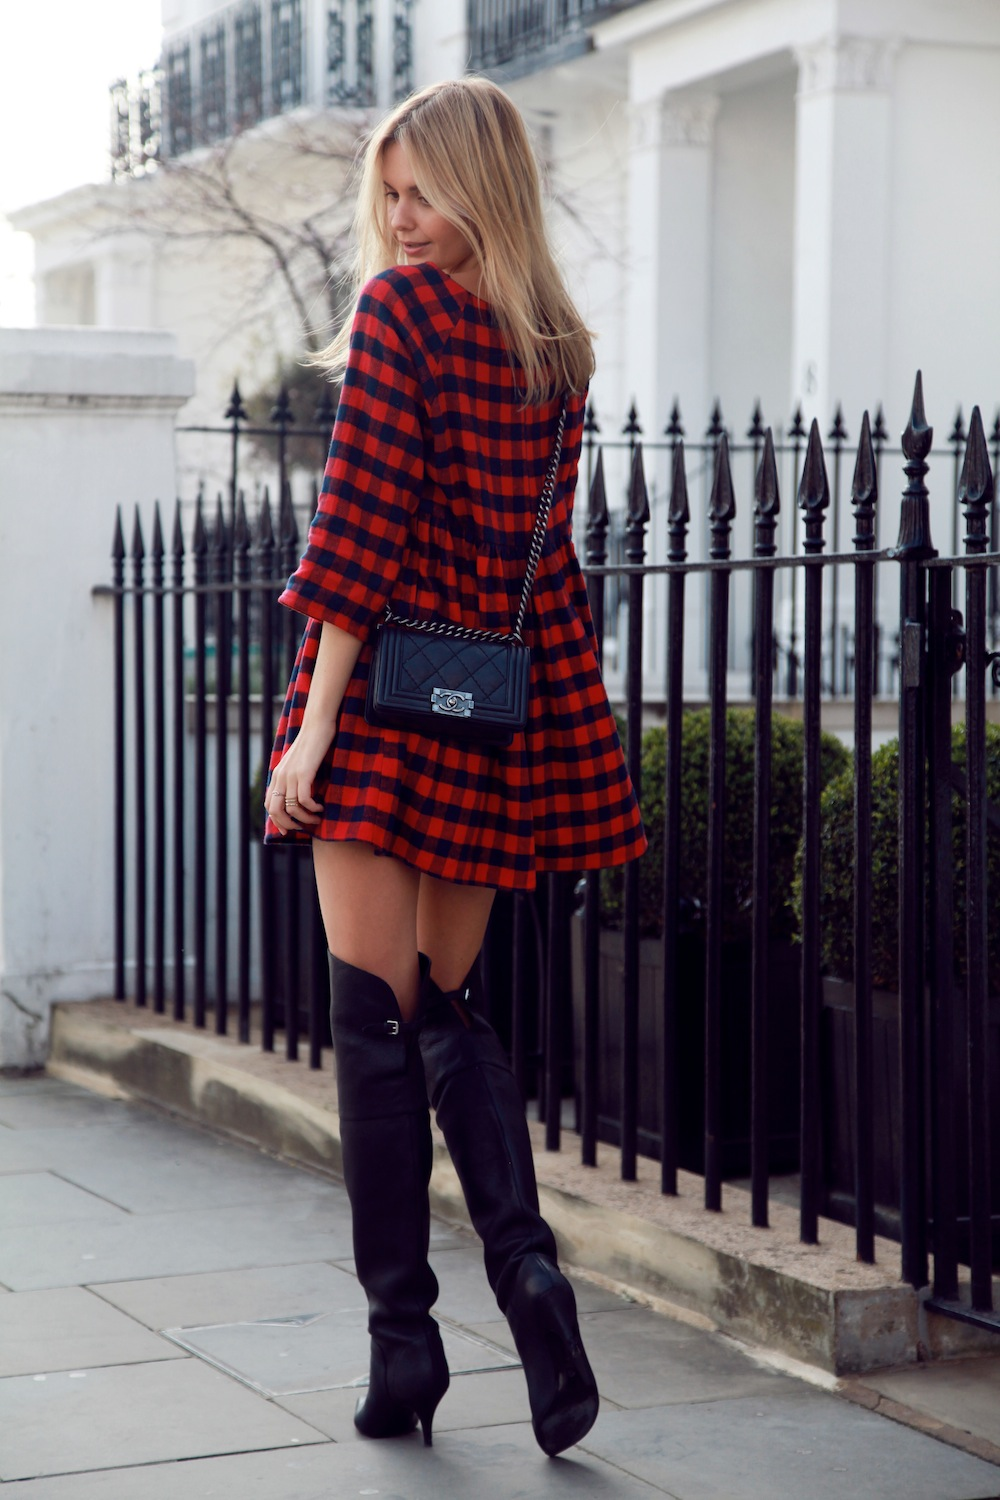 Tuula Is Wearing Check Dress From Asos, 3.1 Phillip Lim boots, A Chanel bag